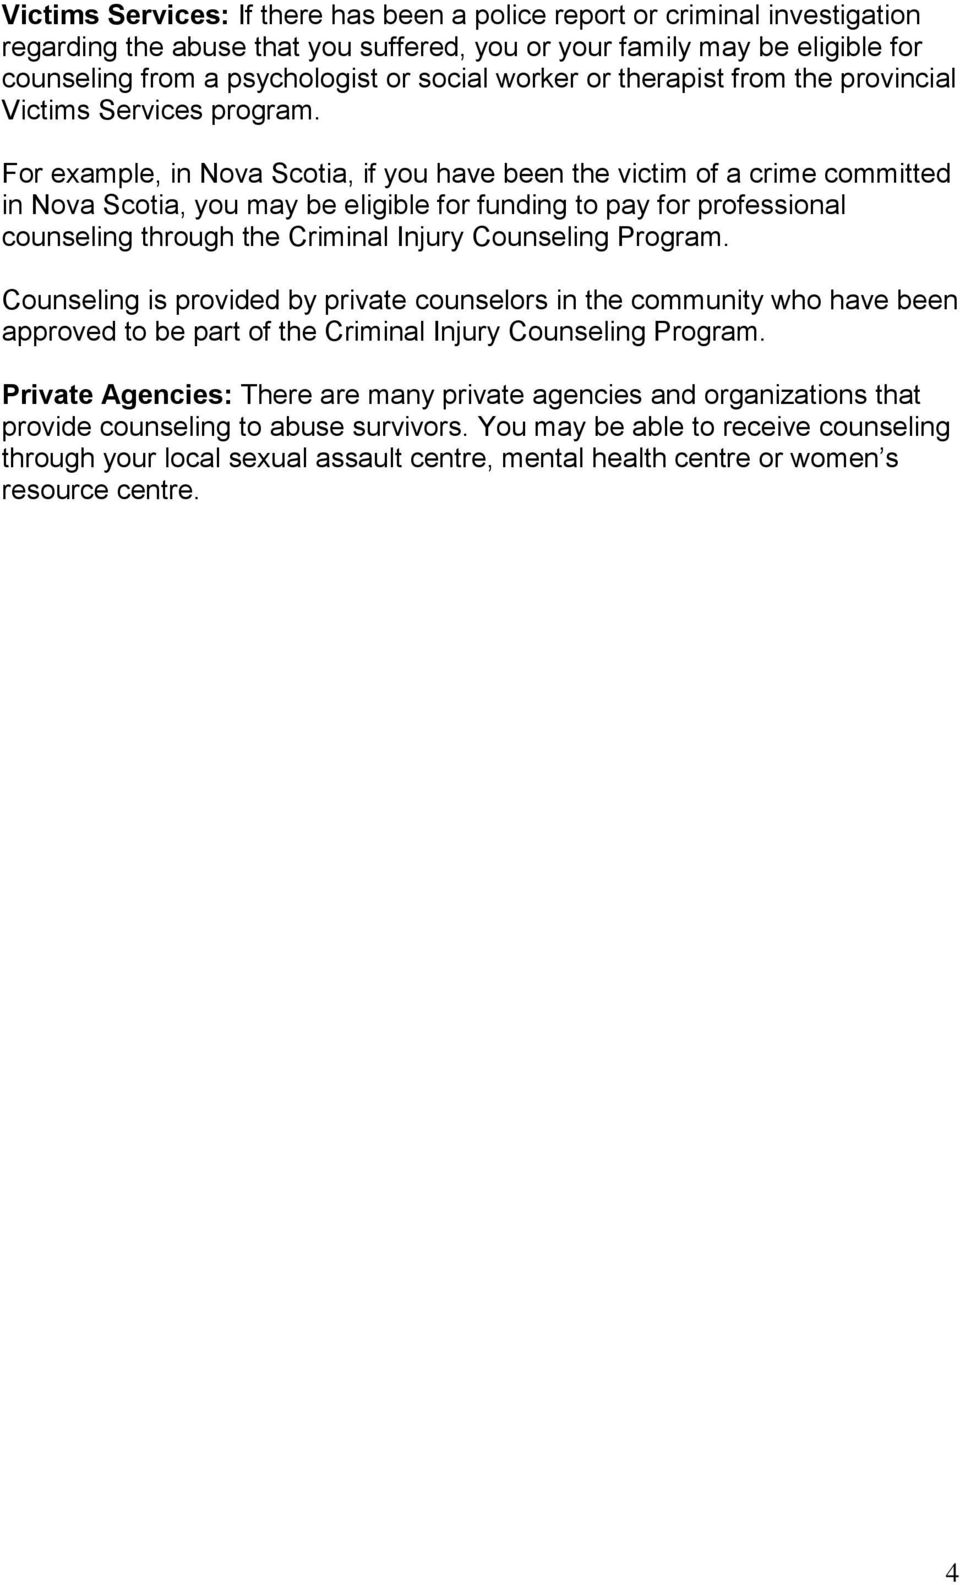 For example, in Nova Scotia, if you have been the victim of a crime committed in Nova Scotia, you may be eligible for funding to pay for professional counseling through the Criminal Injury Counseling